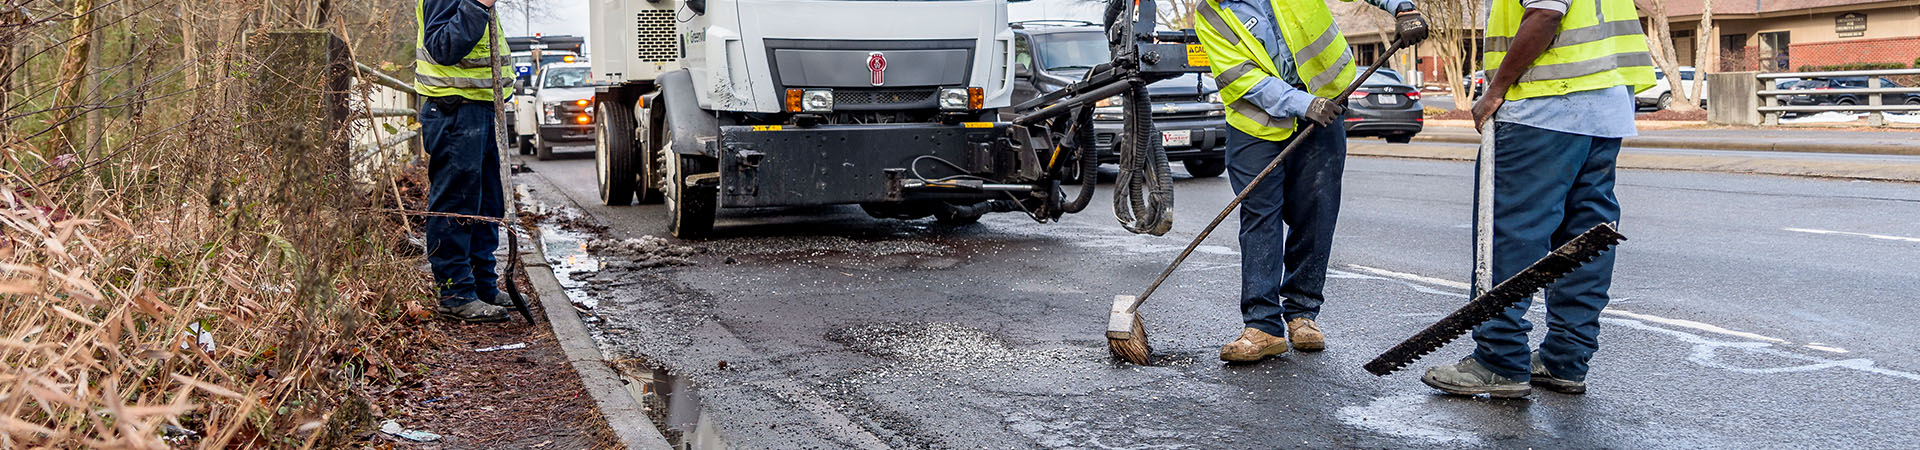 Street repair of a pothole